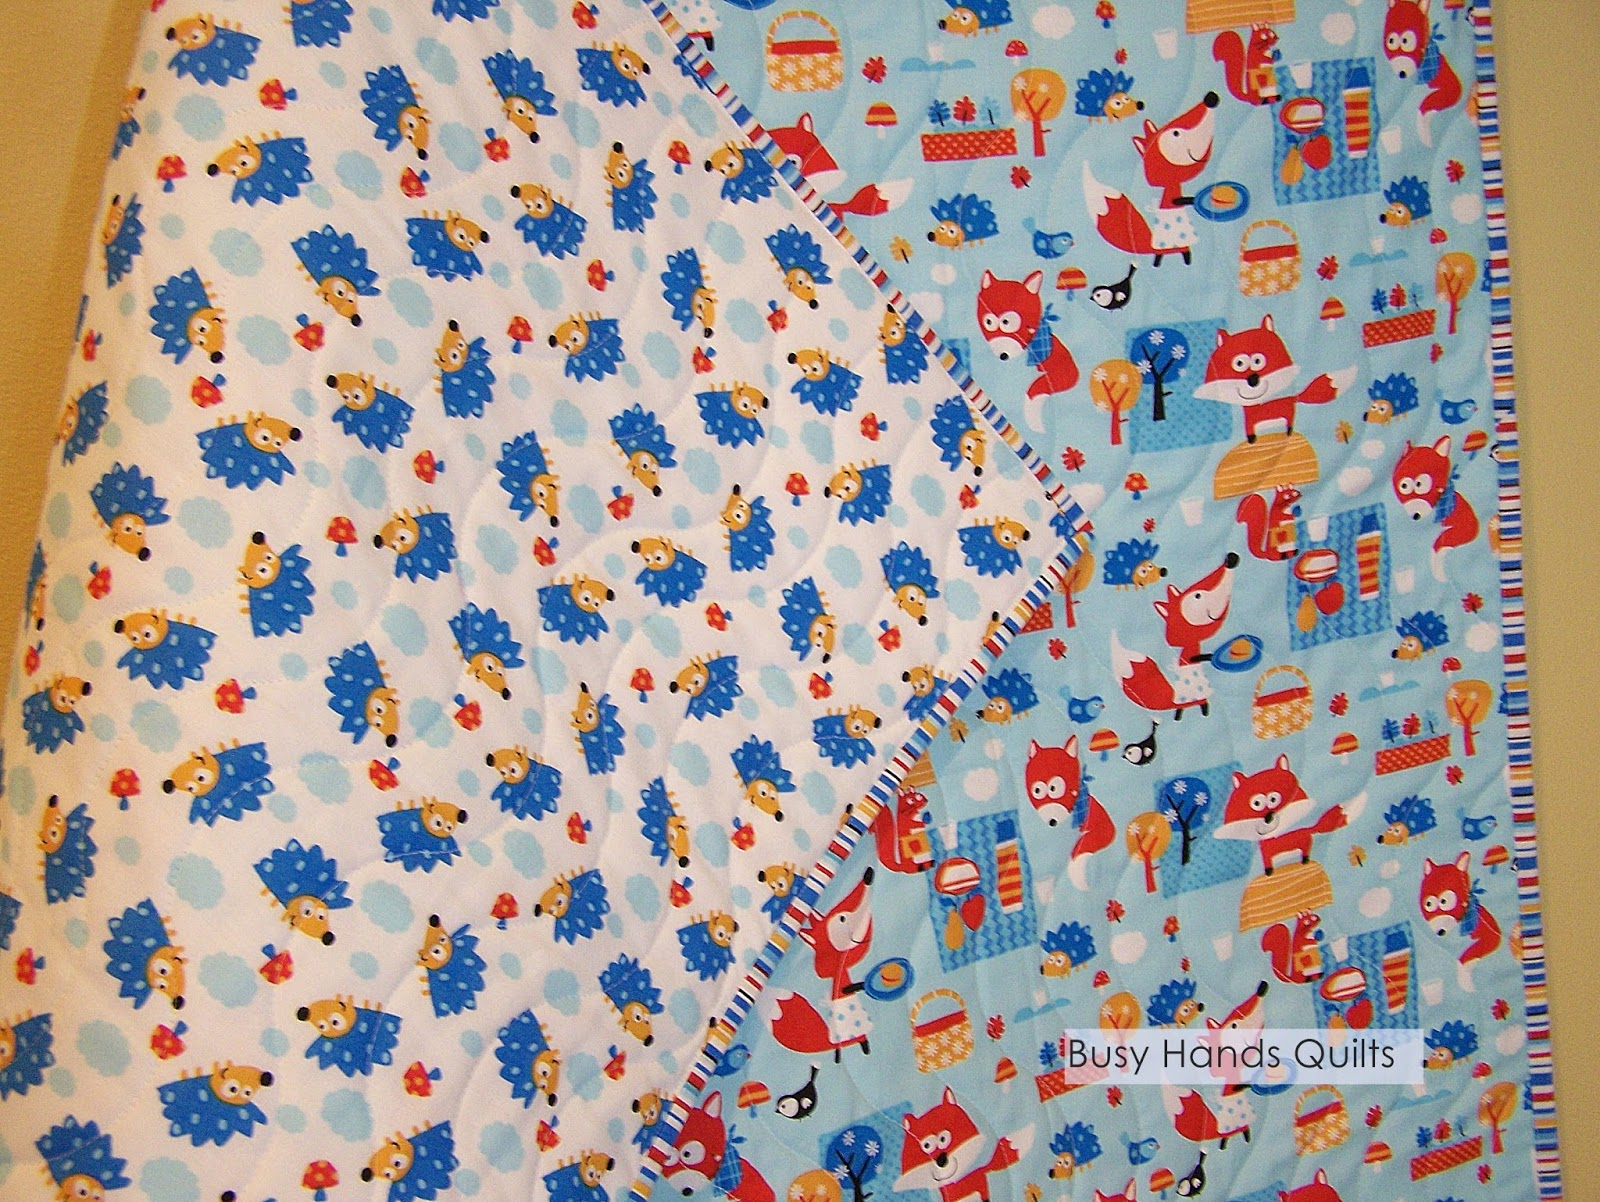 Baby Quilts.com Busy Hands Quilts Foxes And Hedgehogs Wholecloth Baby Quilt